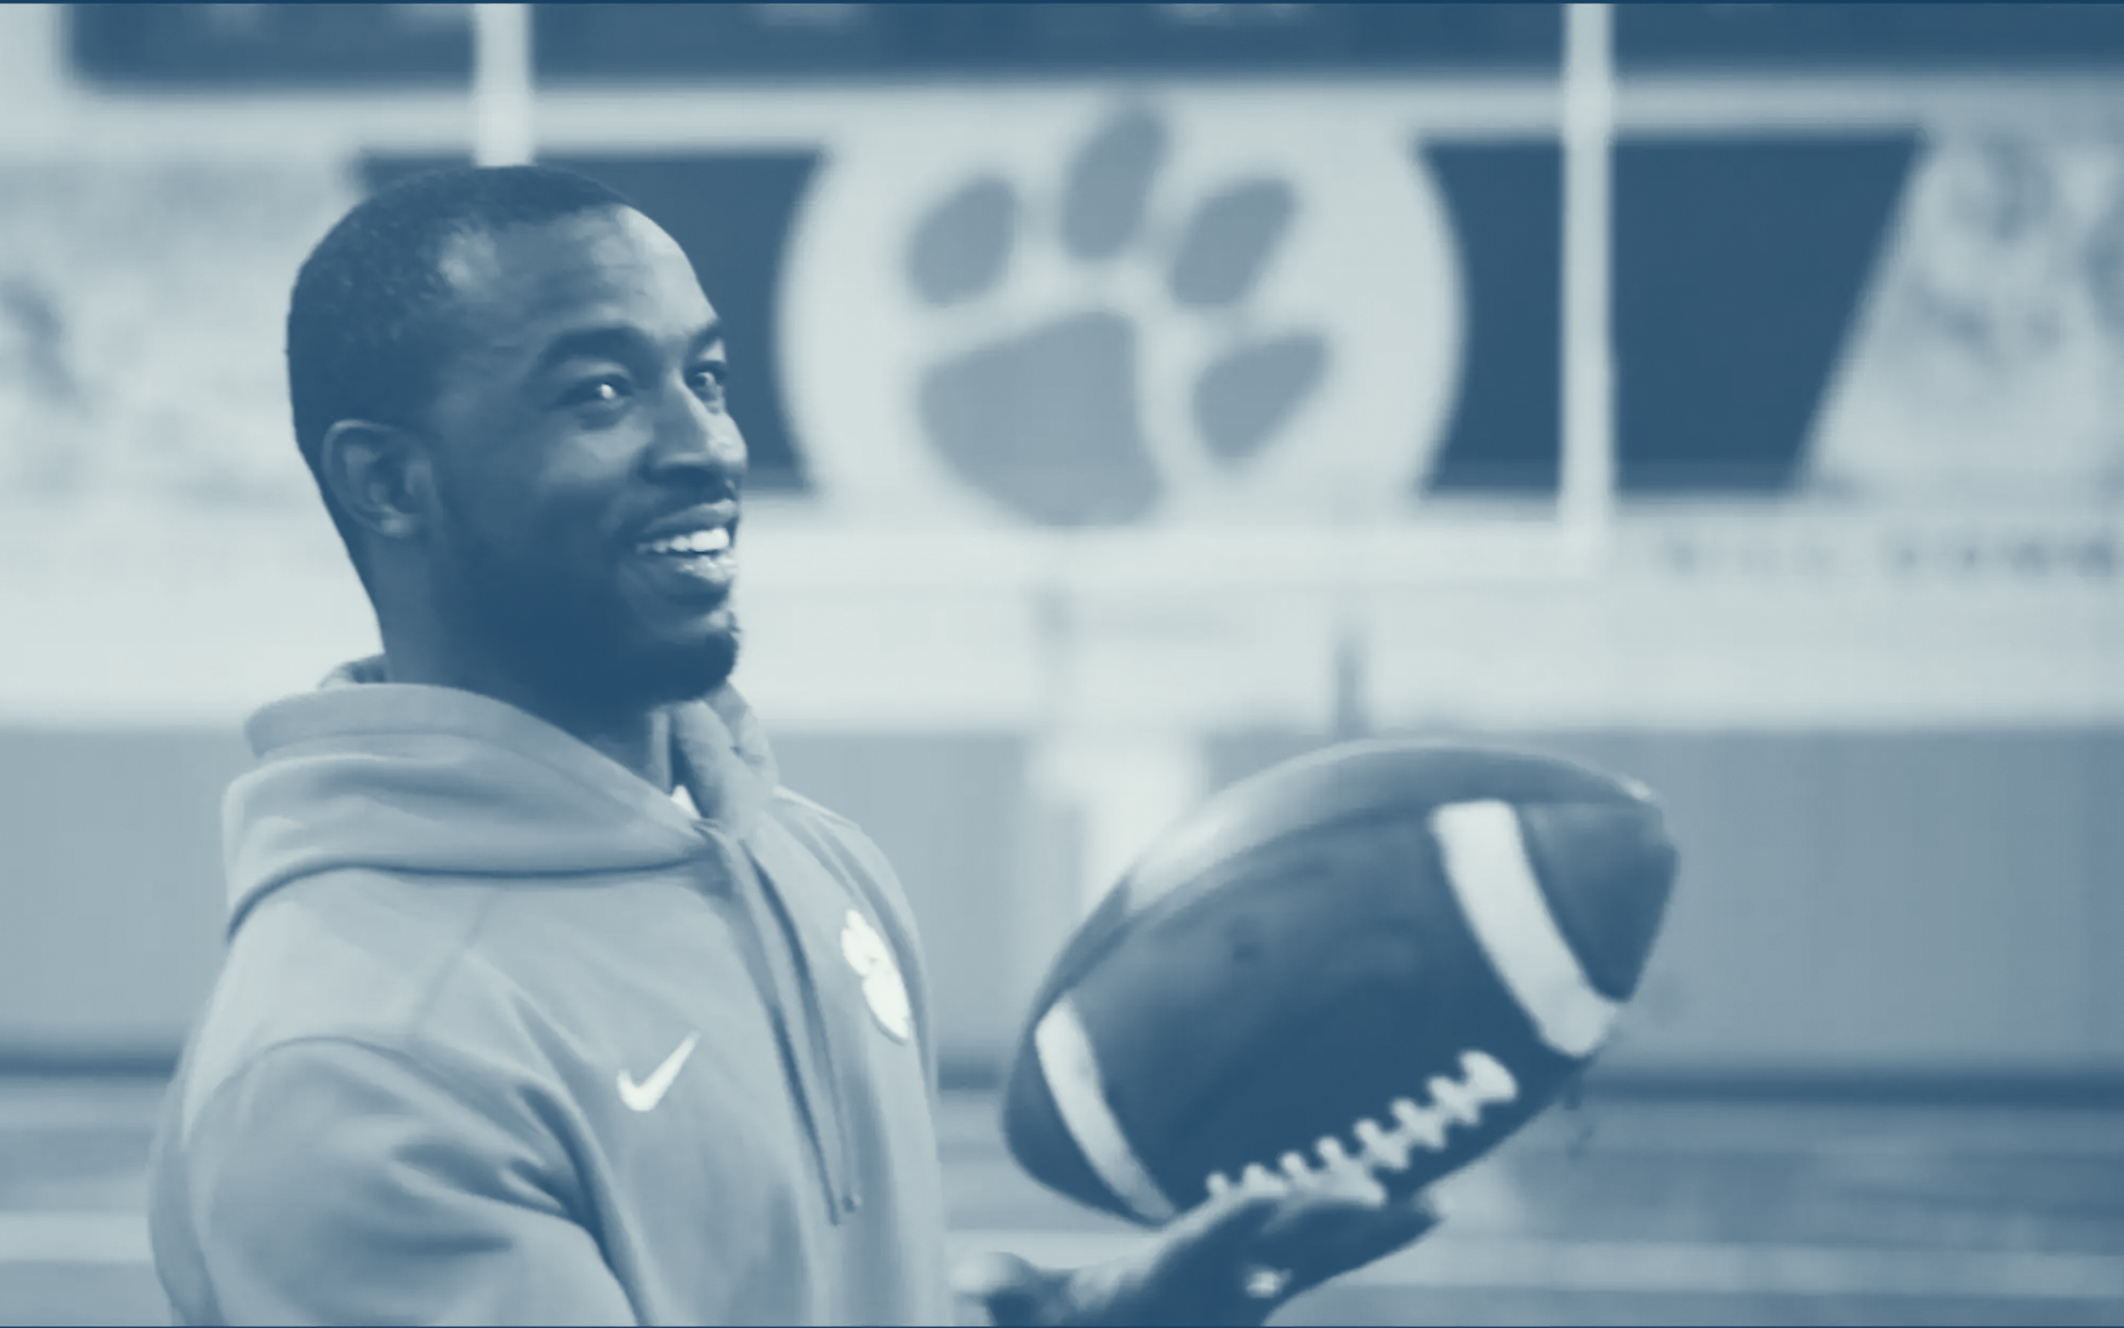 man smiling holding football clemson university tigers